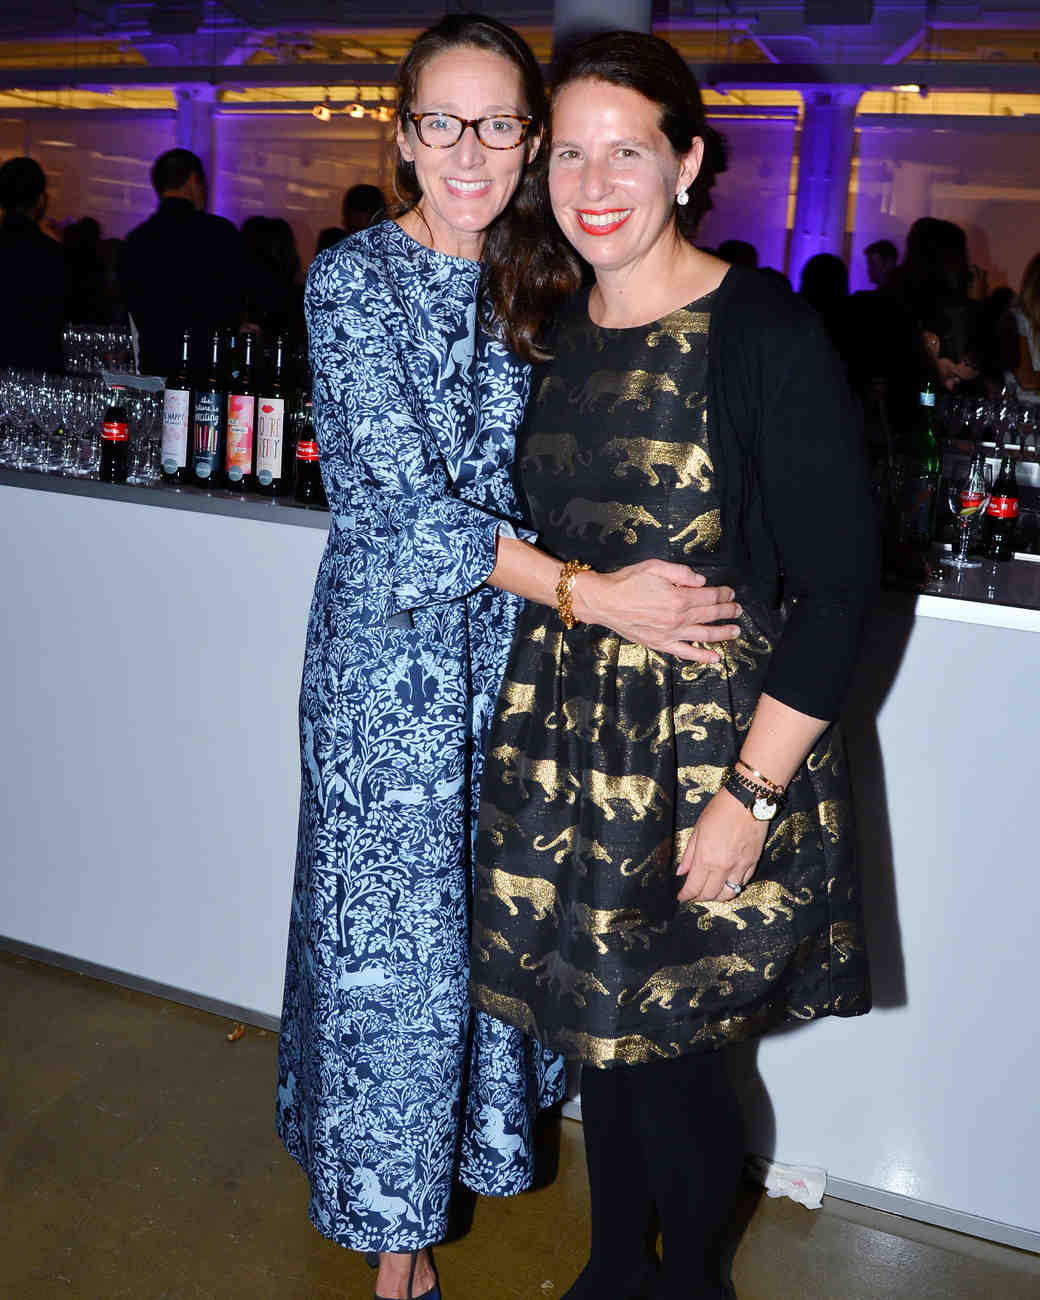 2015-msw-party-guests-tara-guerard-and-liz-banfield-1015.jpg